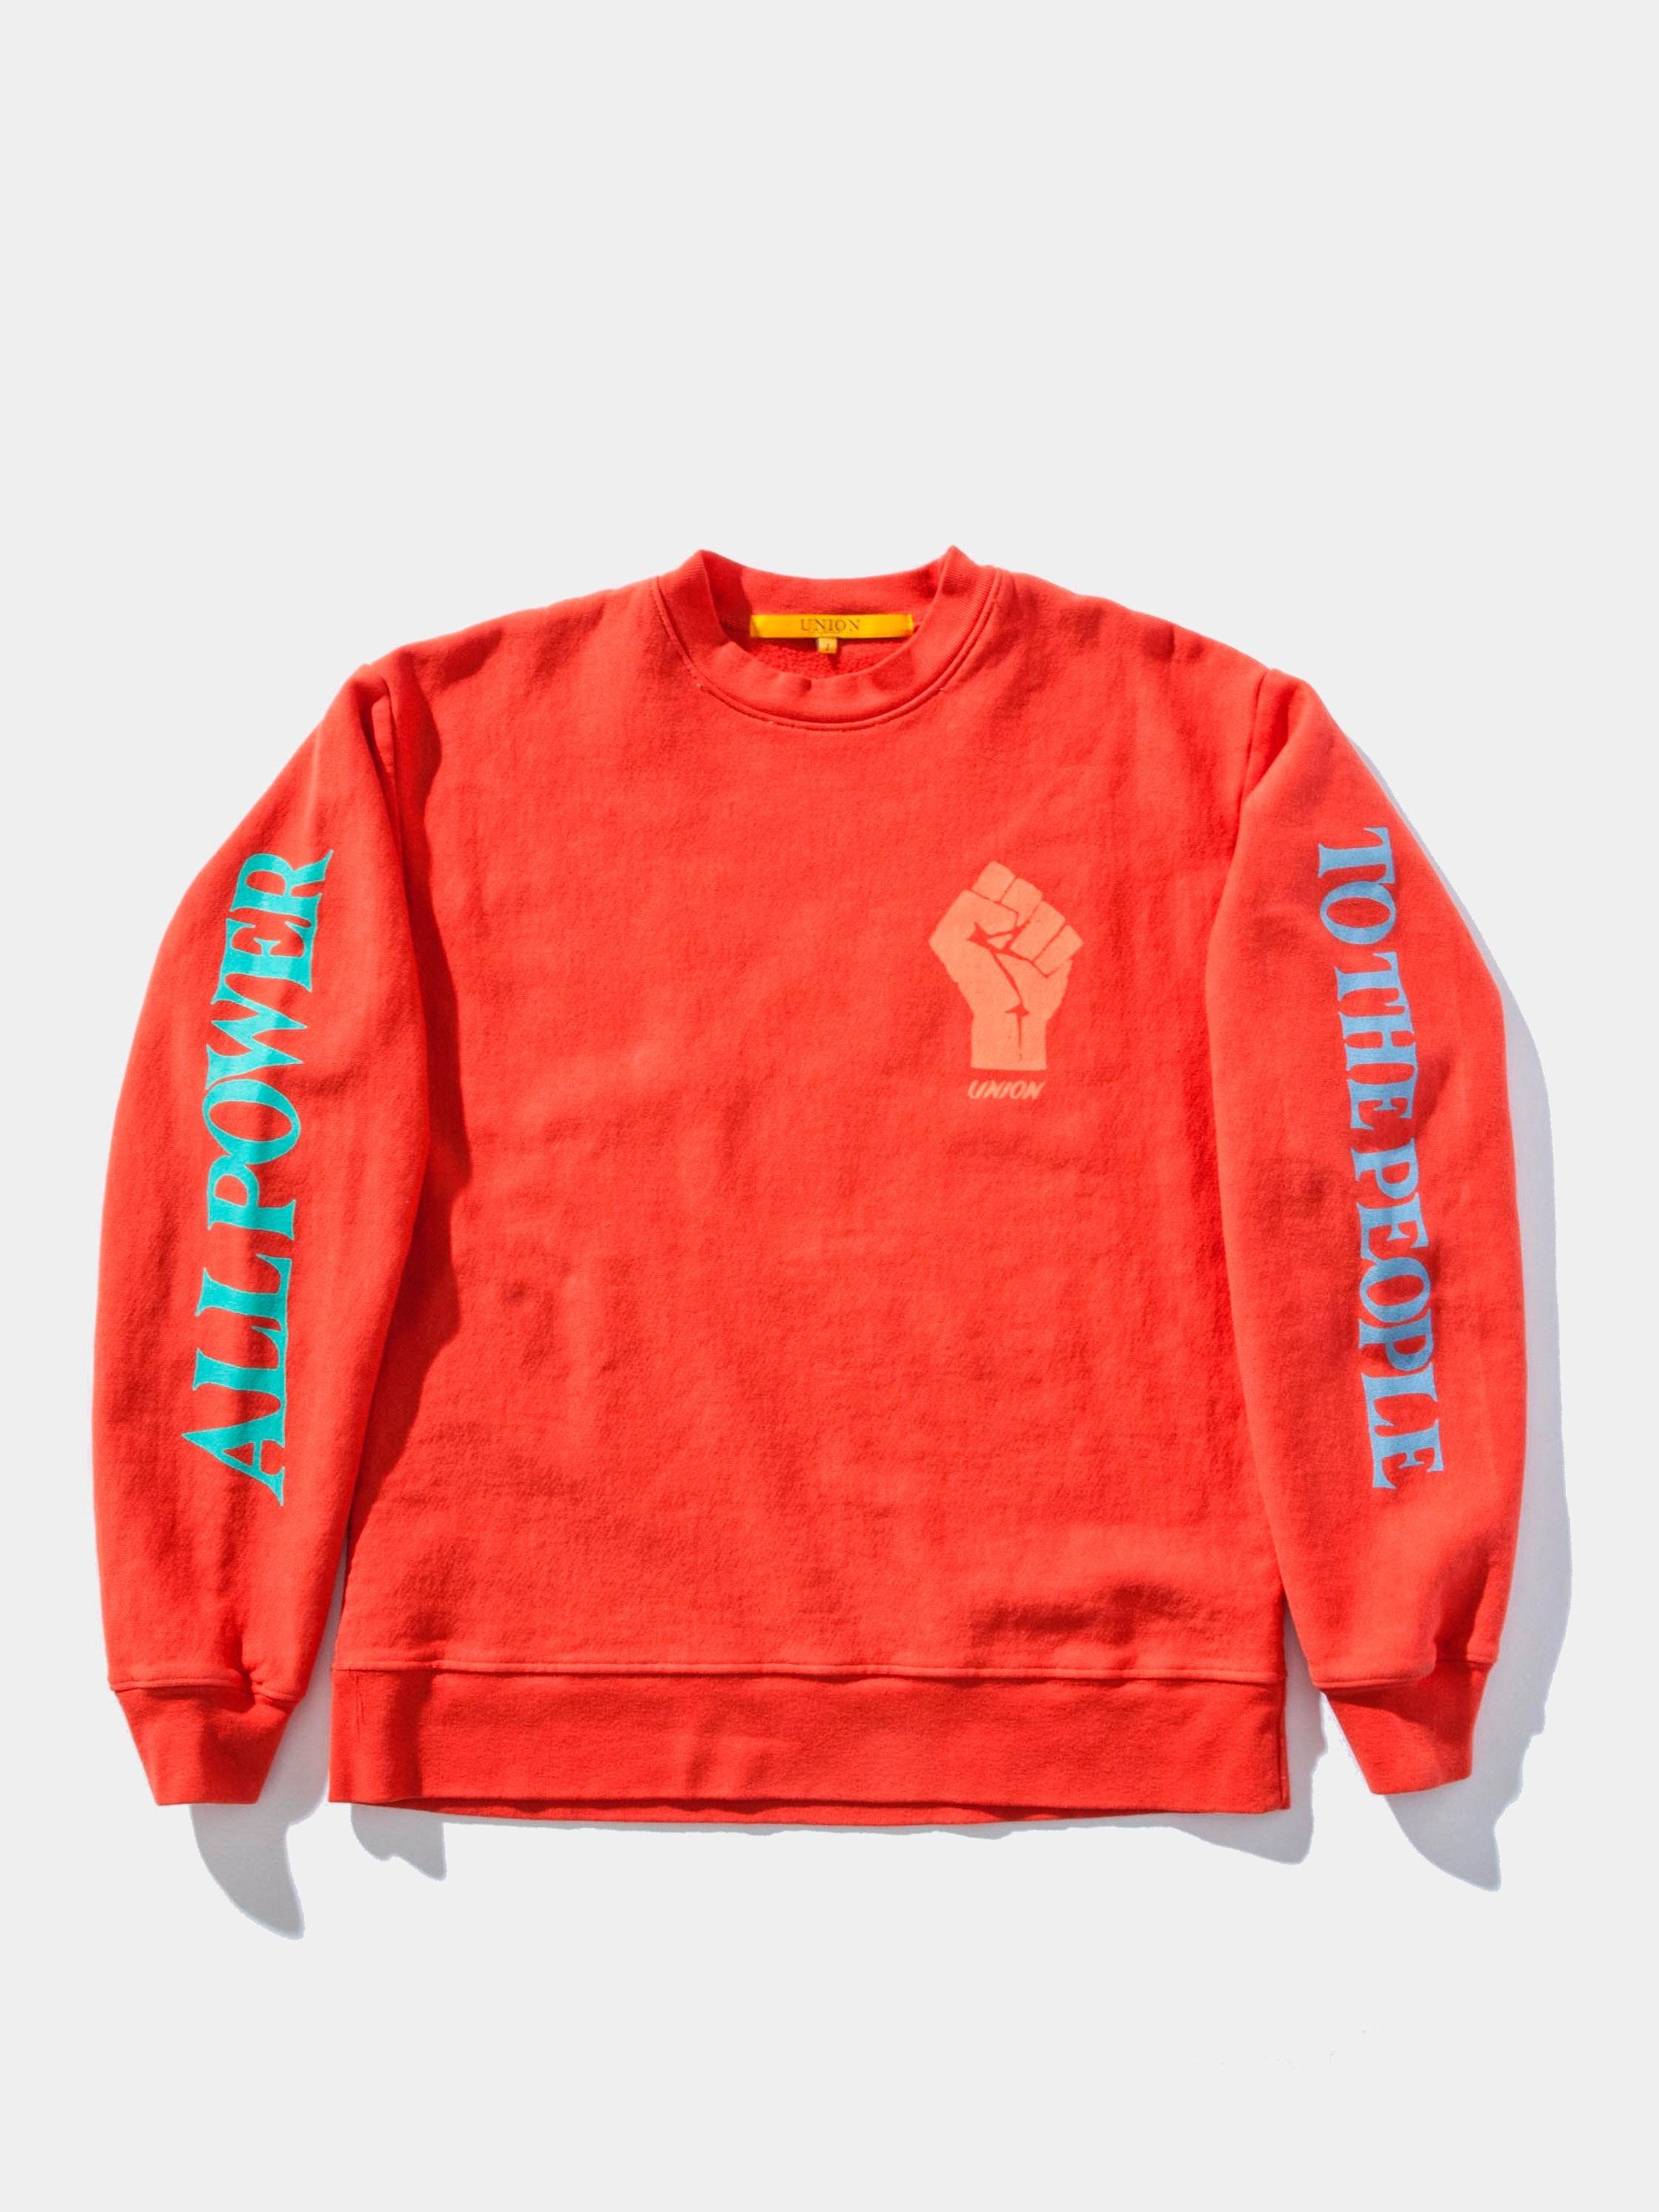 Power To The People Crewneck